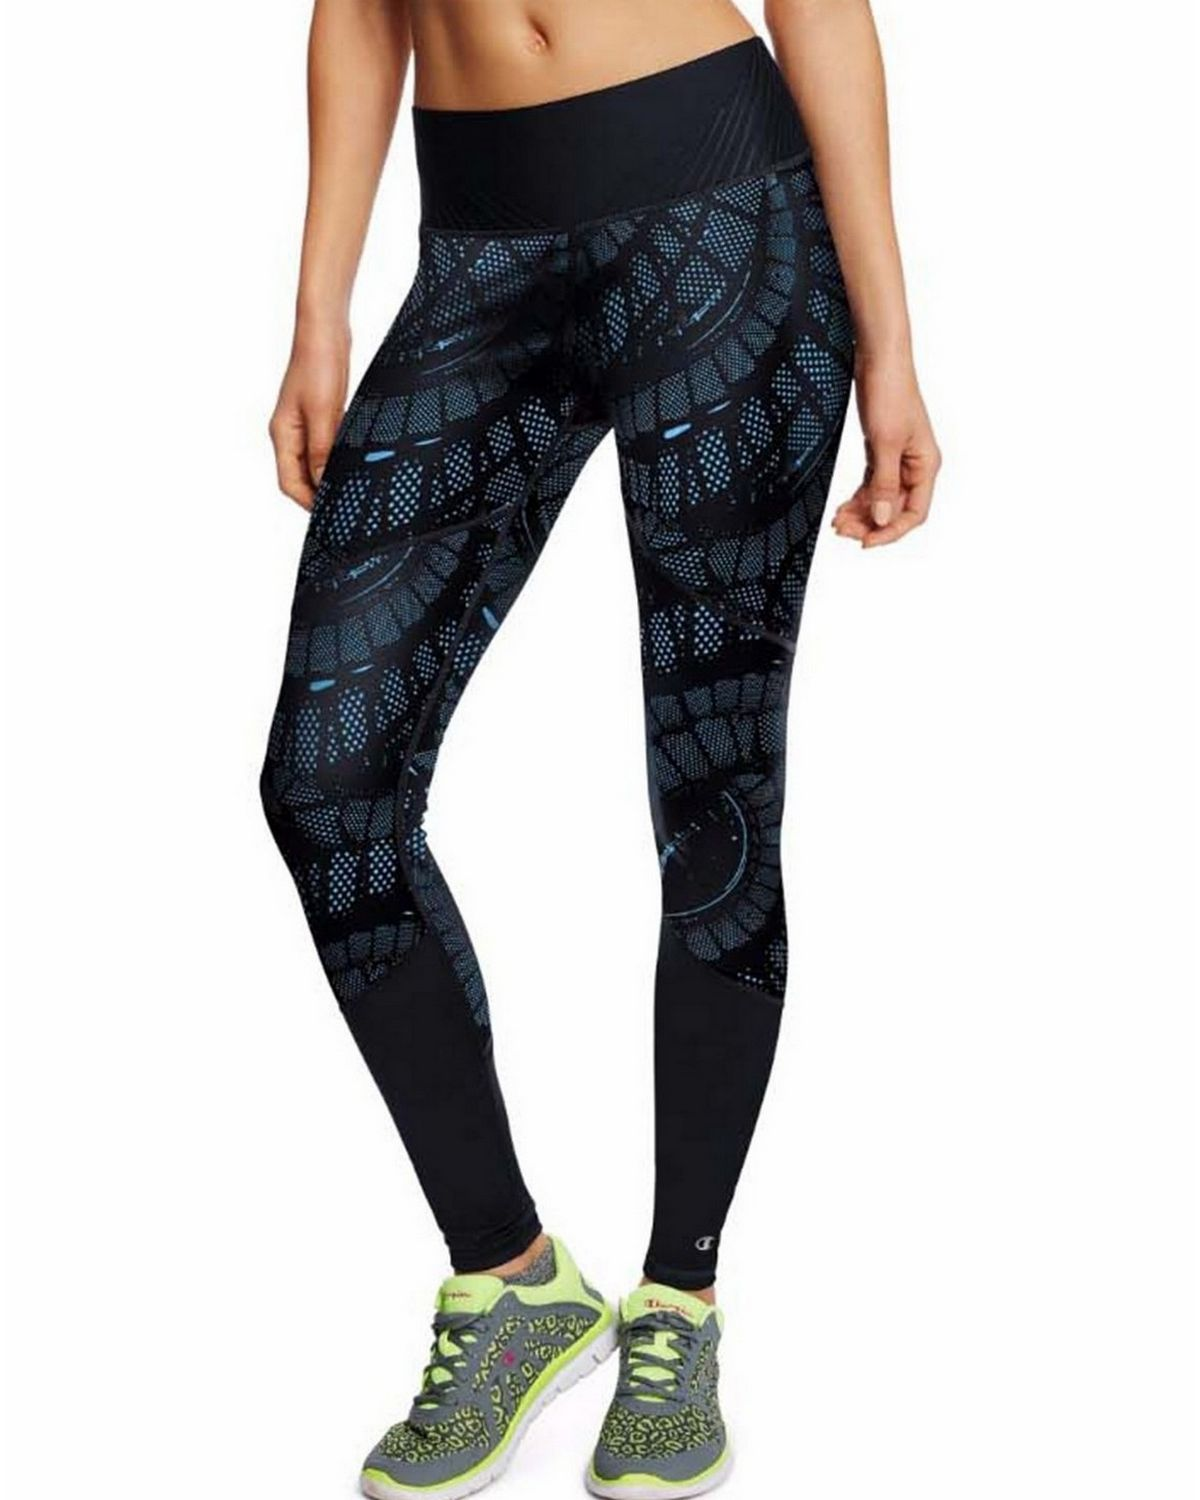 Champion M0940p Womens Printed Run Tights - Underwater Blue Spiral Staircase/Black - XL M0940P